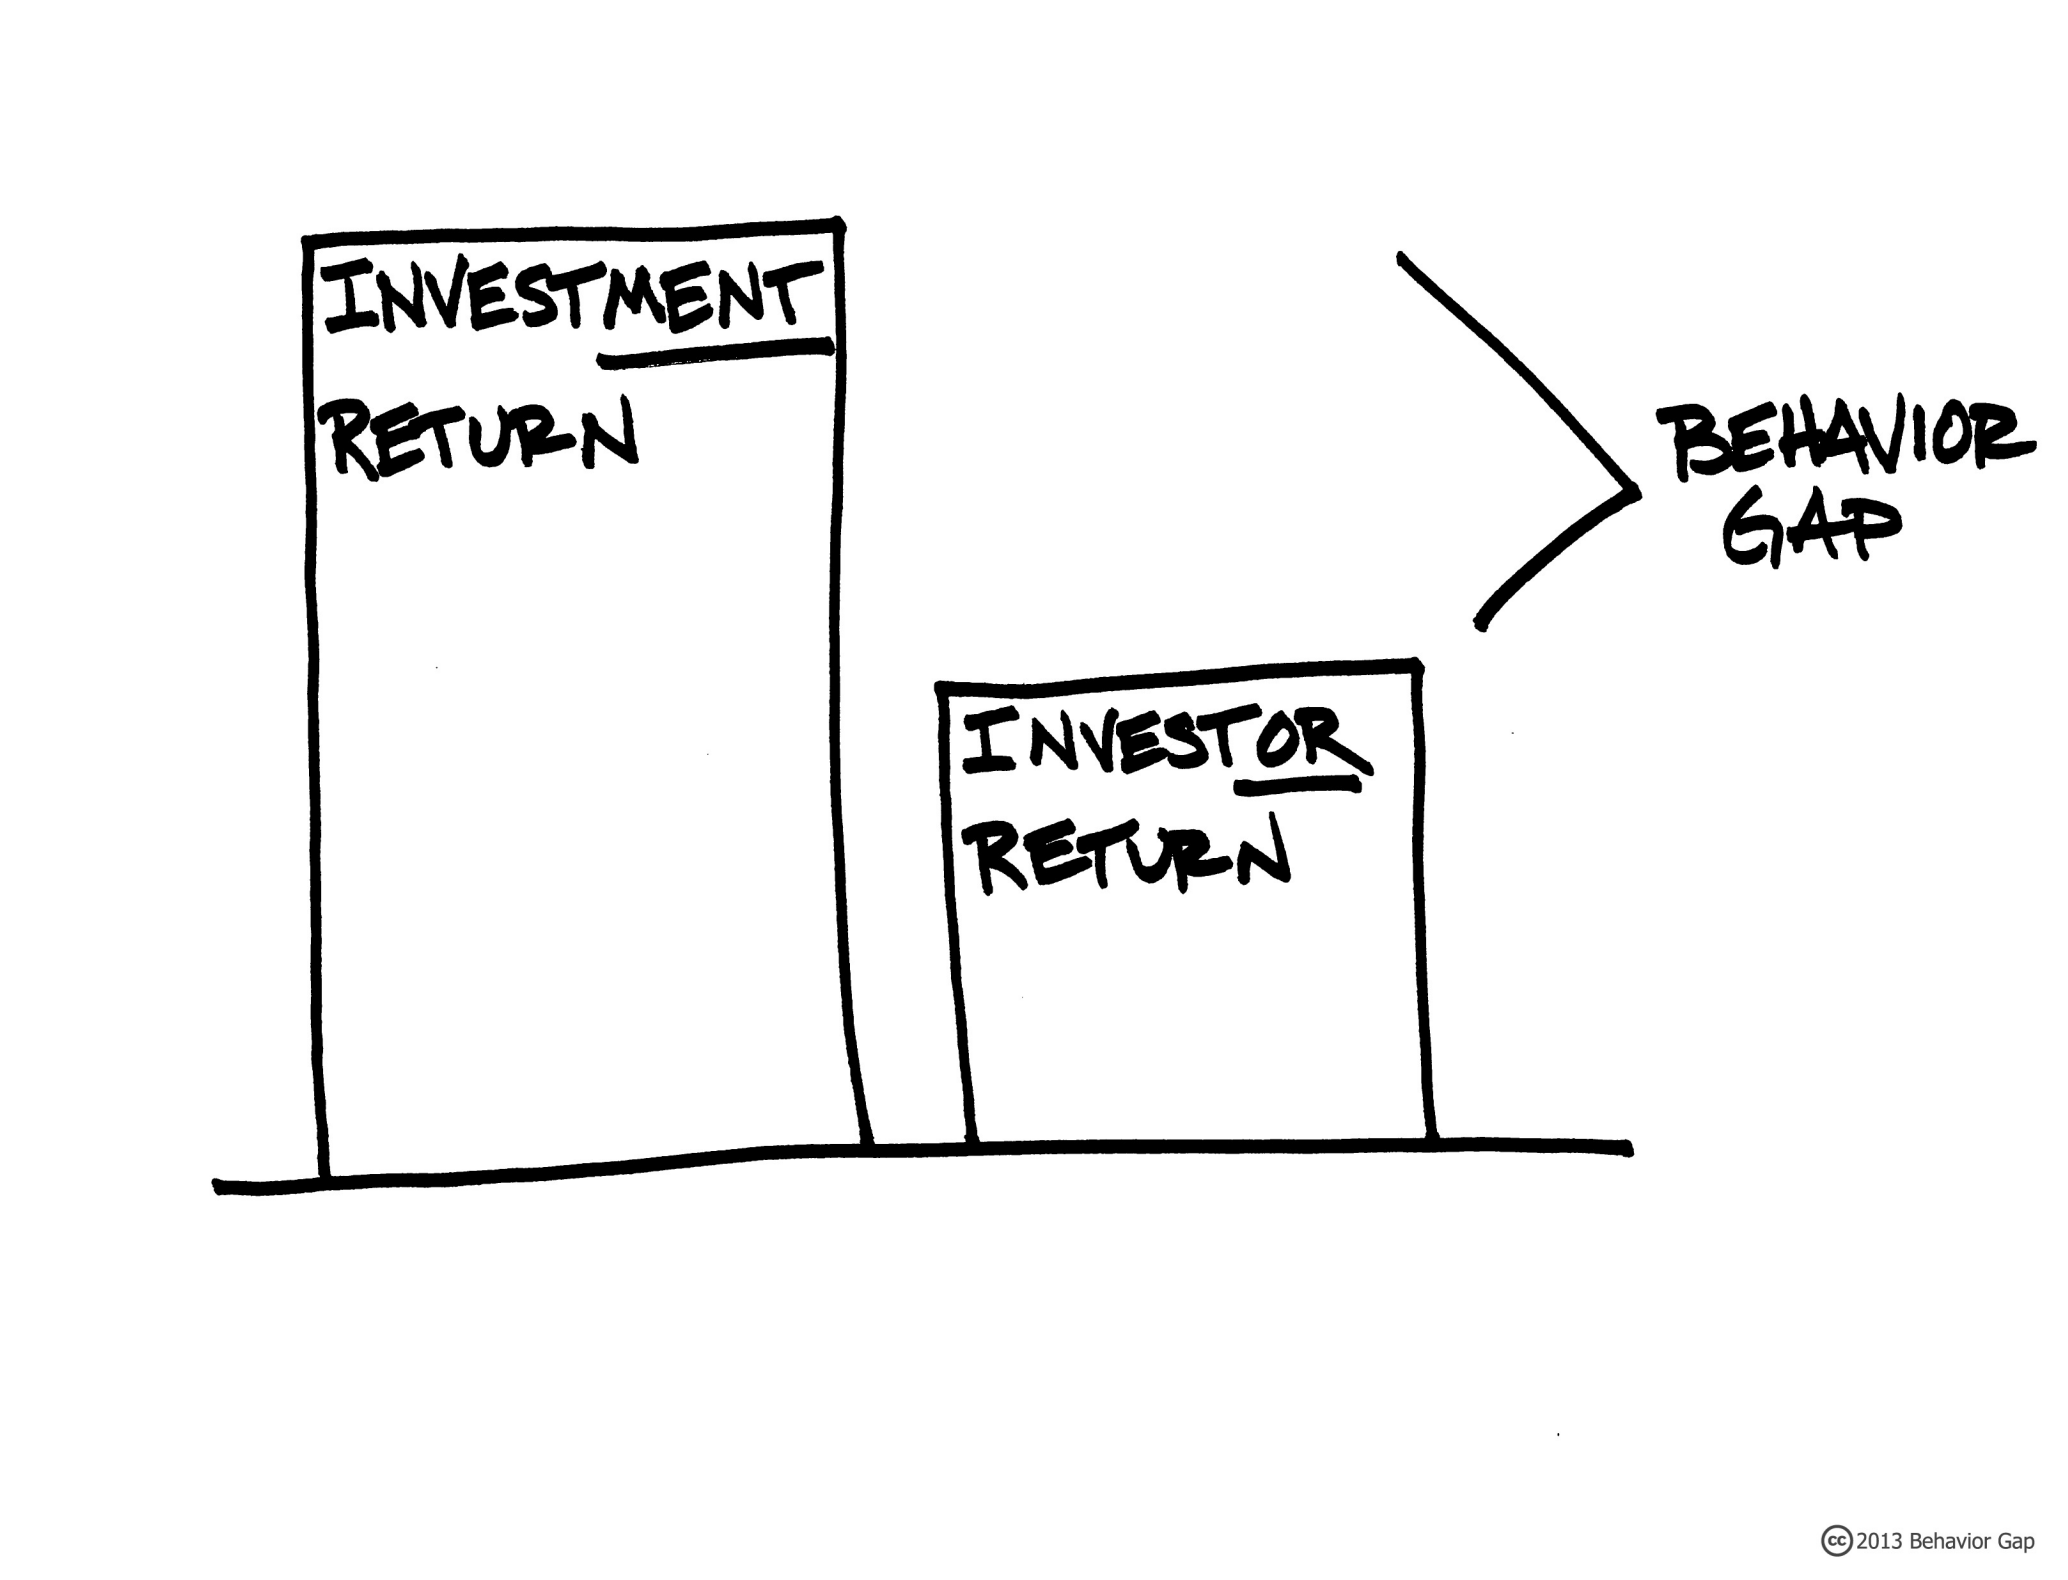 How Could the Behavior Gap Affect Your Investments During This Time of Market Volatility? Thumbnail